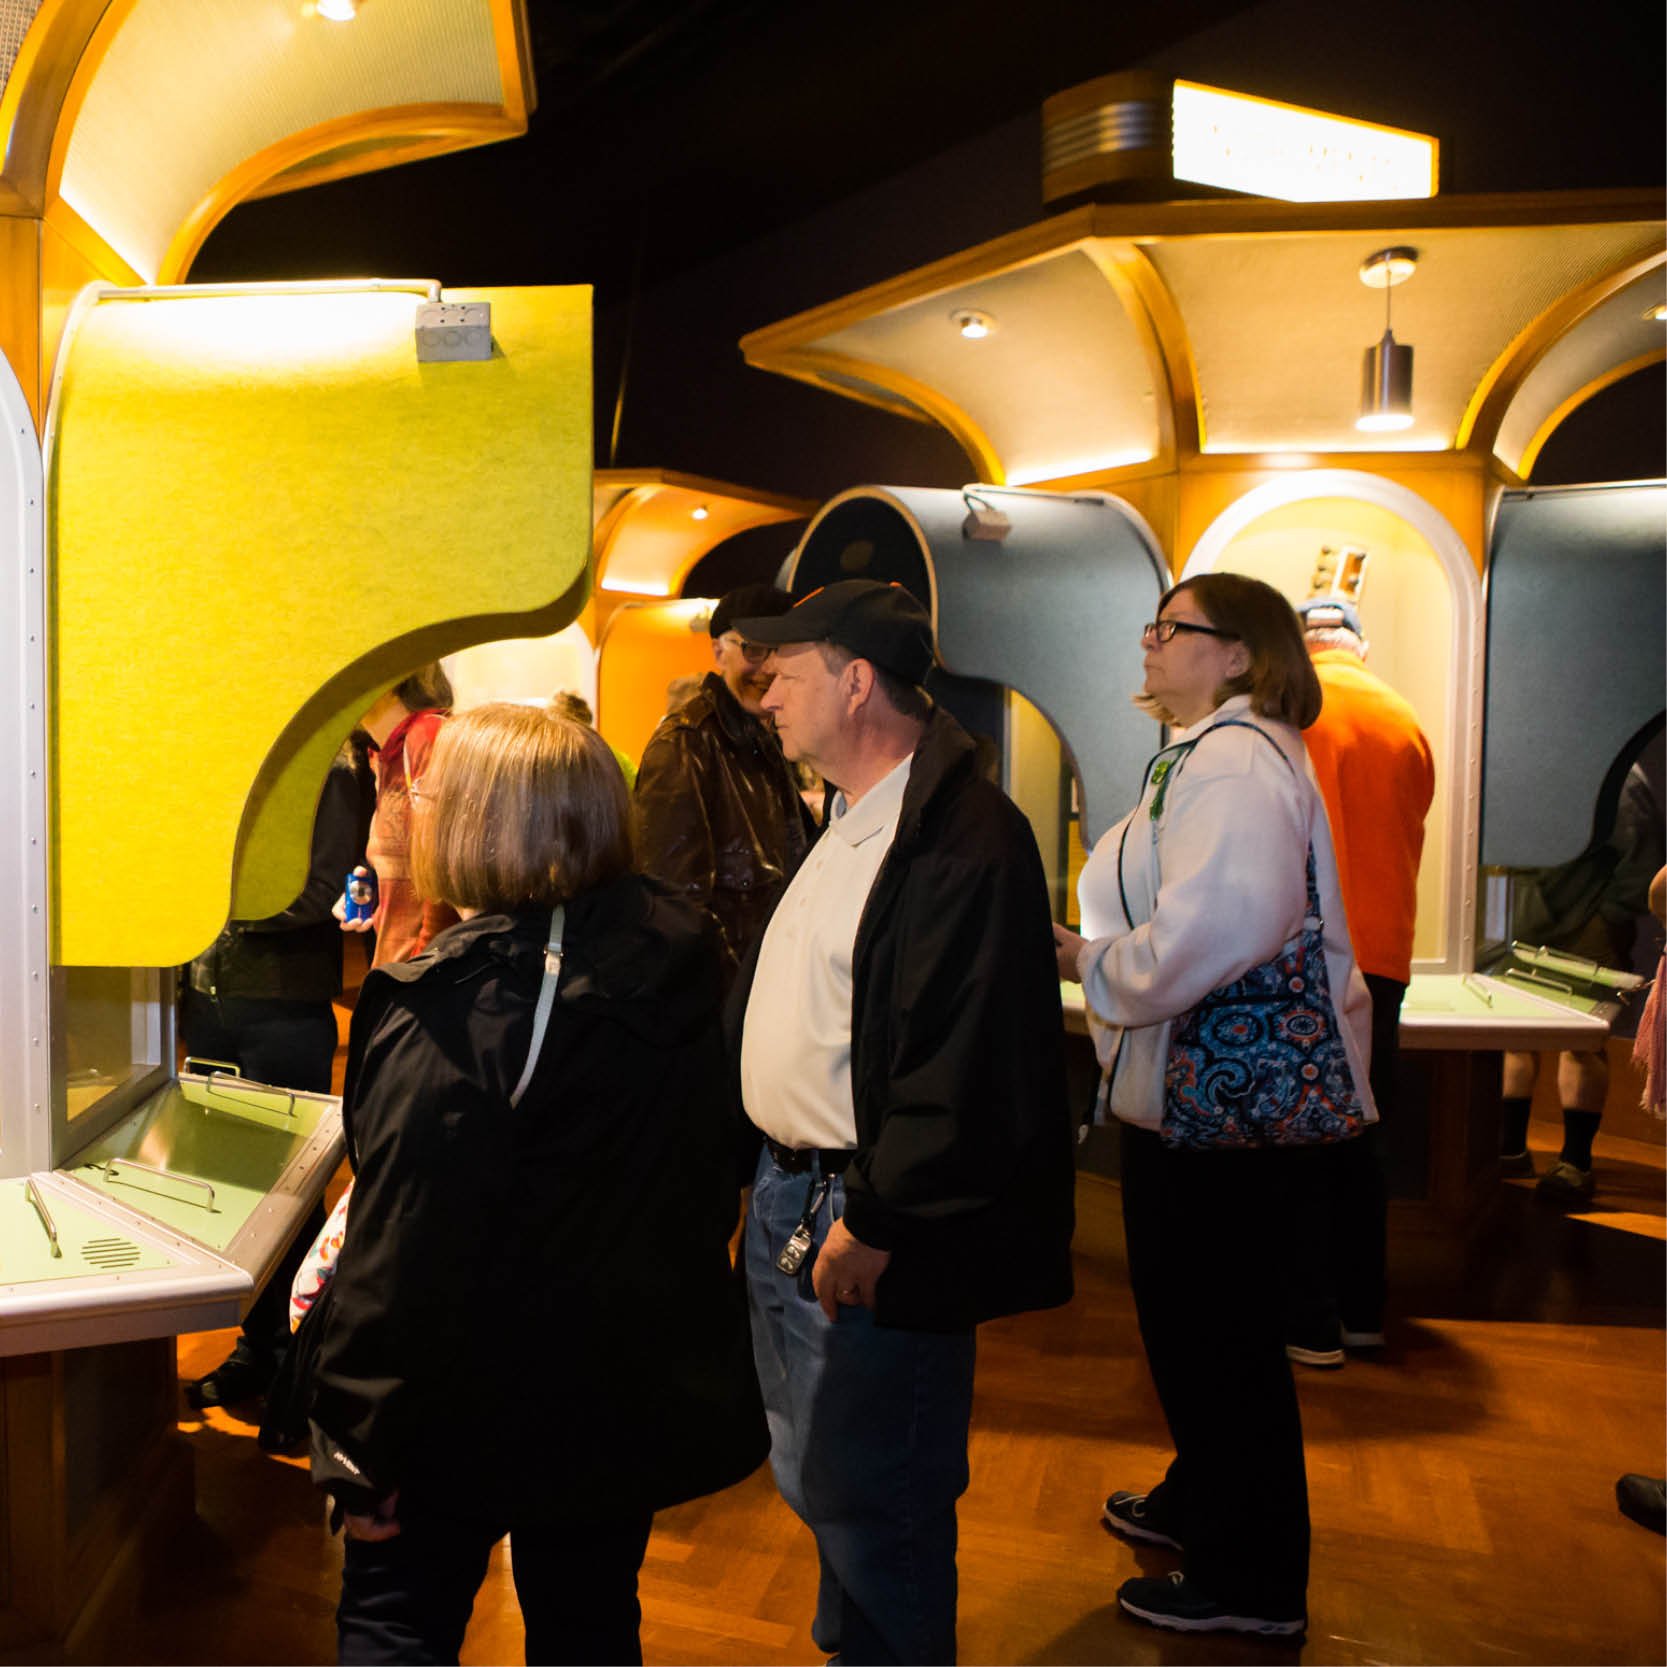 the beatles magical history tour traveling exhibition pop culture museum